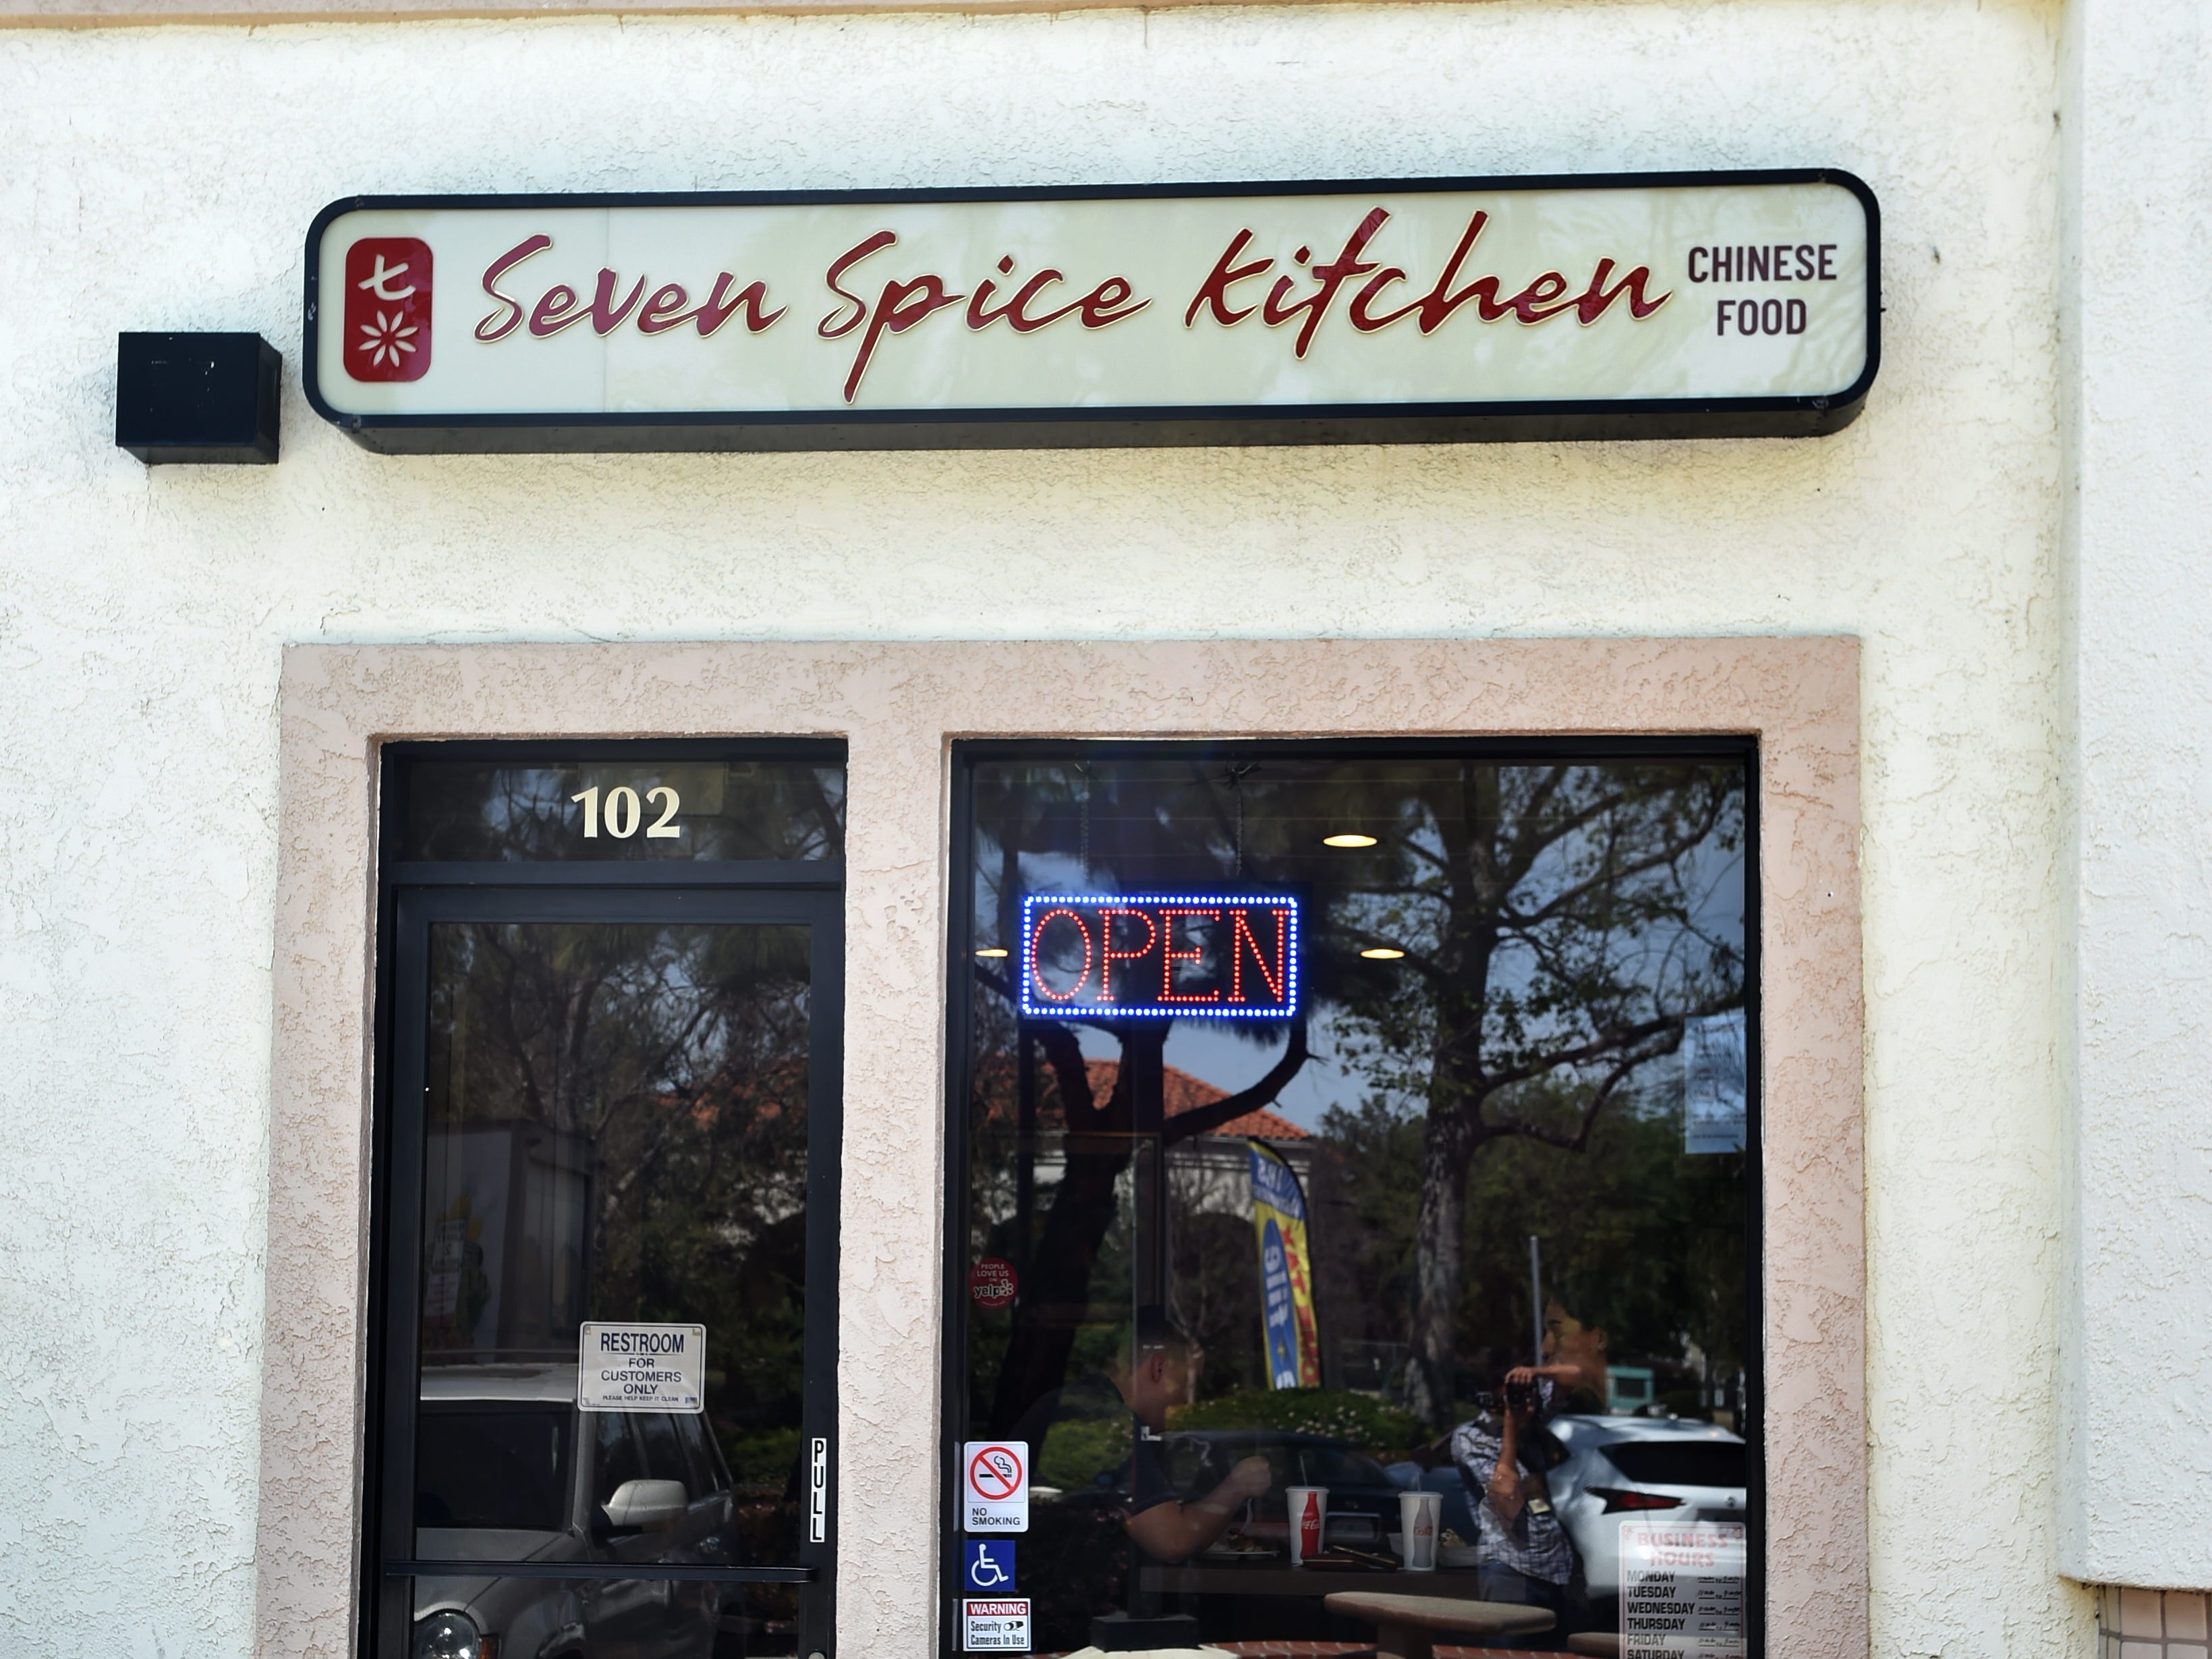 Seven Spice Kitchen is located at 2454 W. Hillcrest Drive, Suite #102 in Newbury Park.